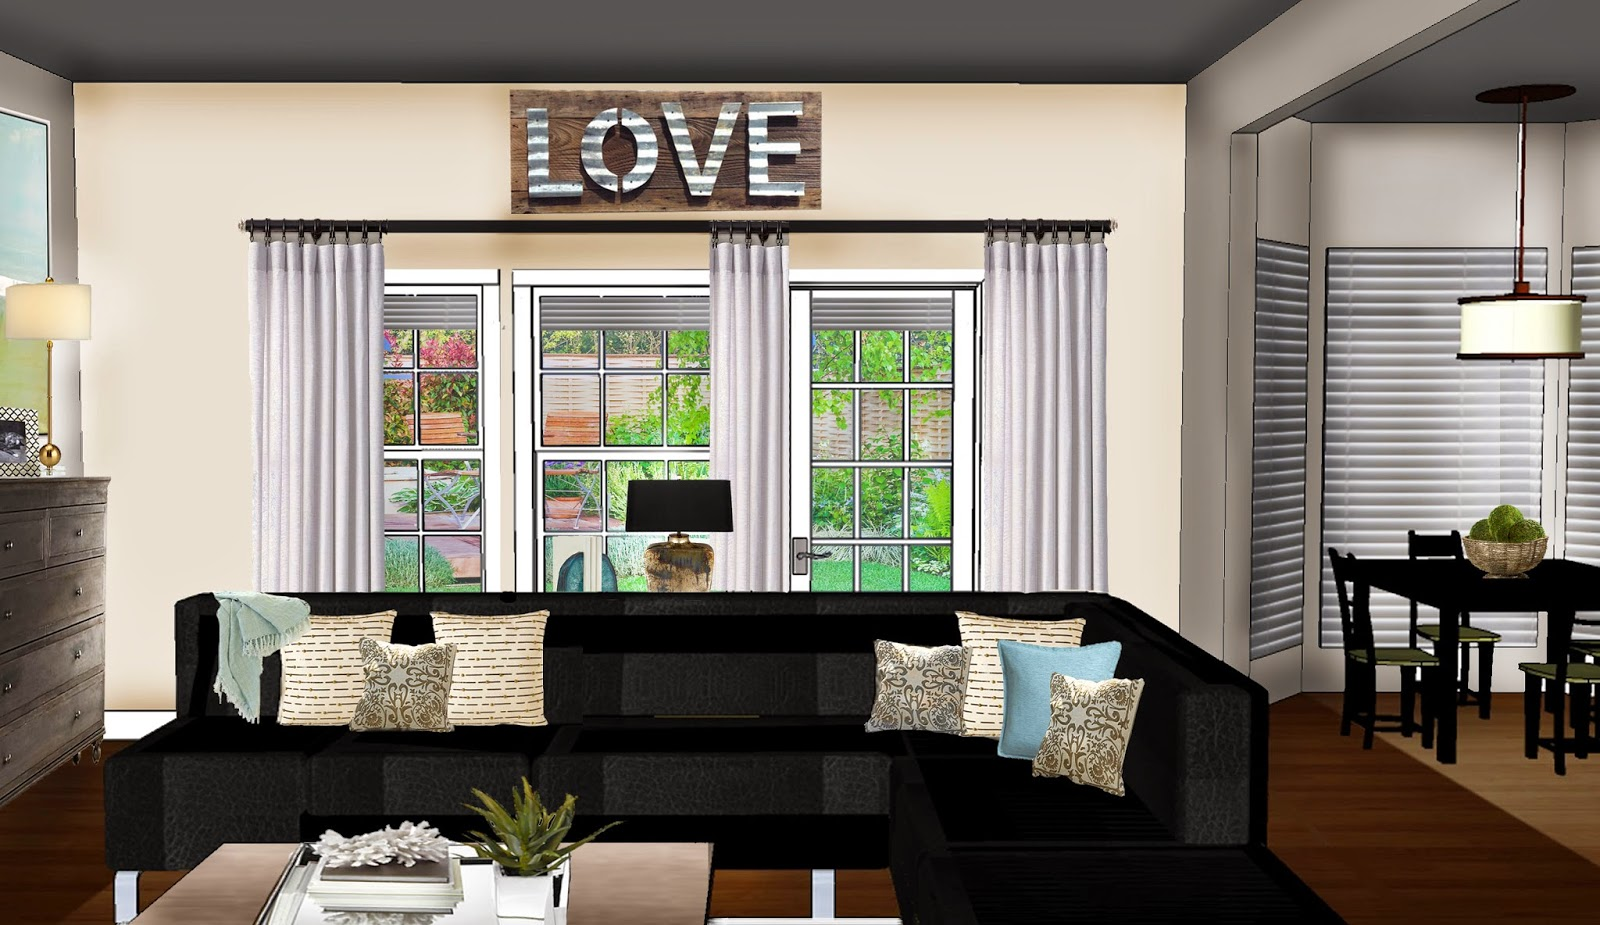 And This Is The Elevation Facing Backyard Showing Proposed Linen Curtains With A Very Cool Vintage Reclaimed Wood LOVE Sign Above